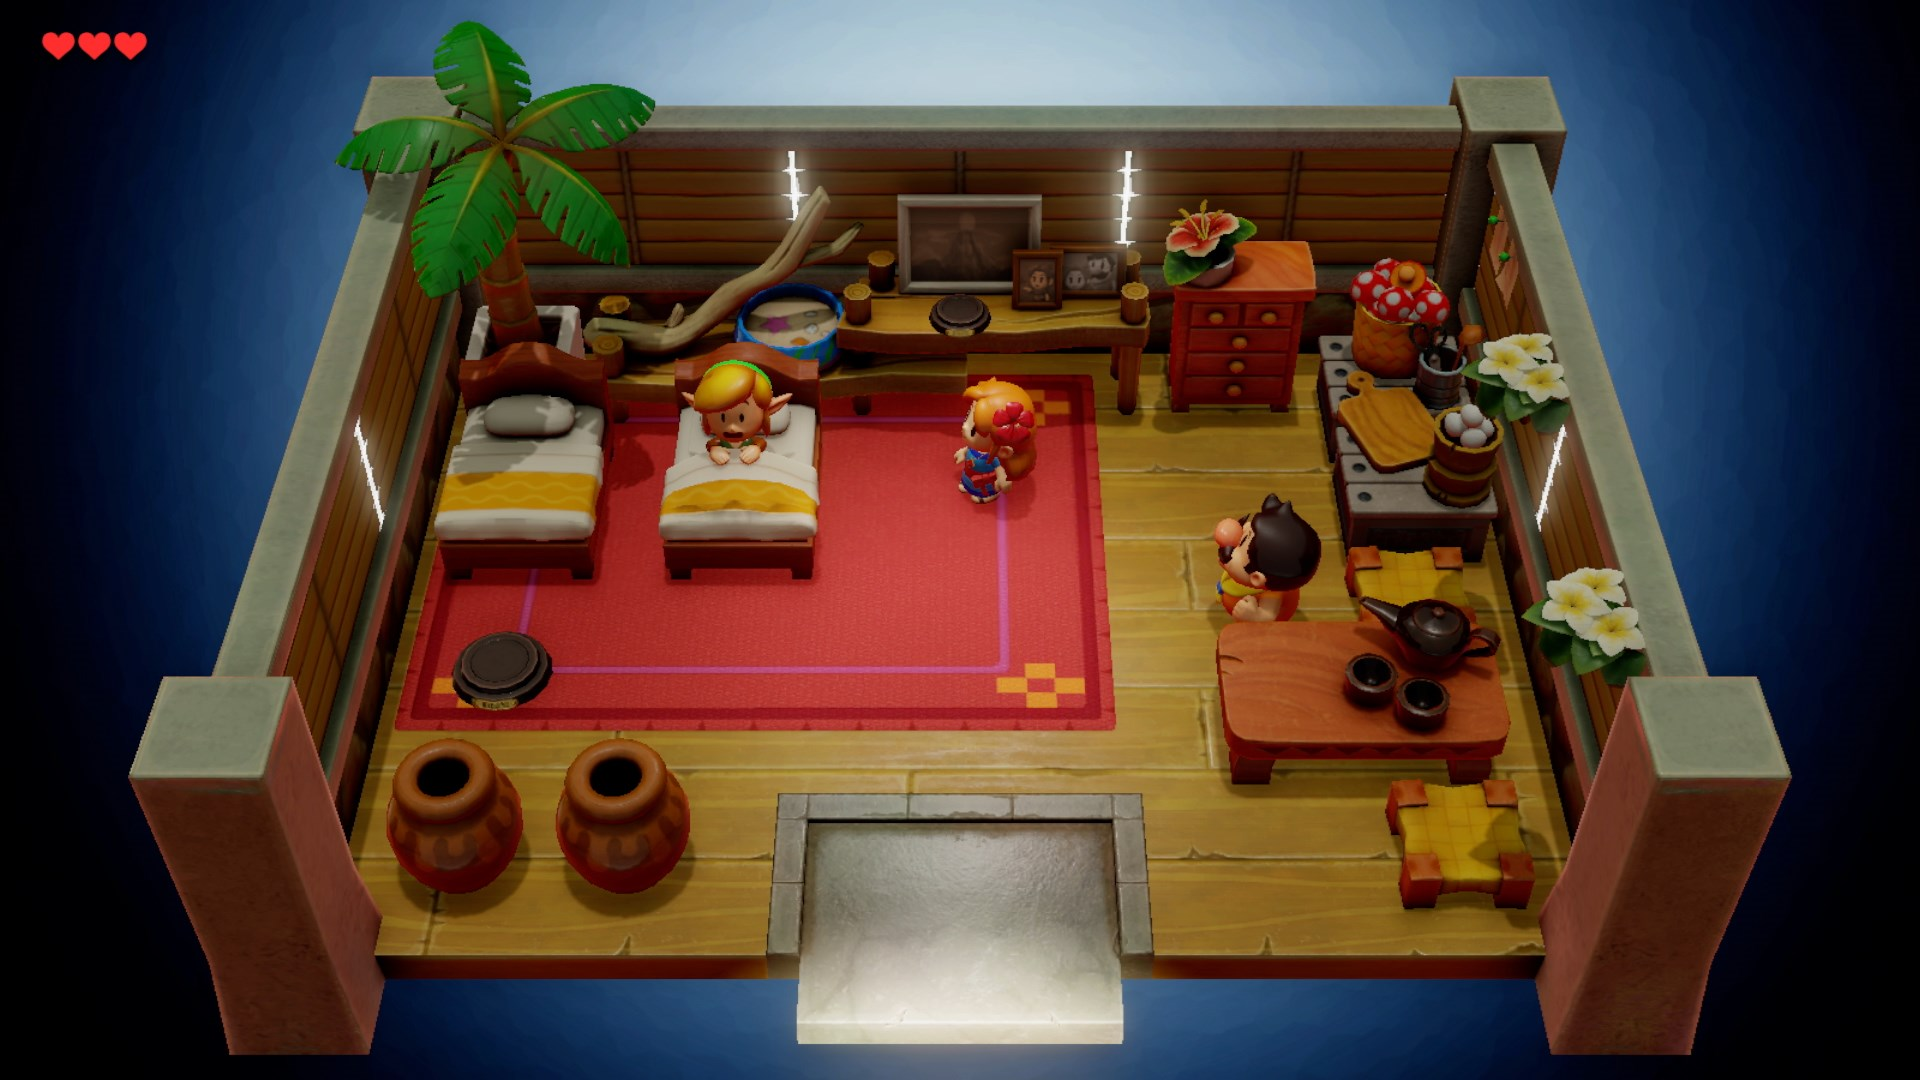 Game Boy vs. Switch: The biggest differences in Link's Awakening remake